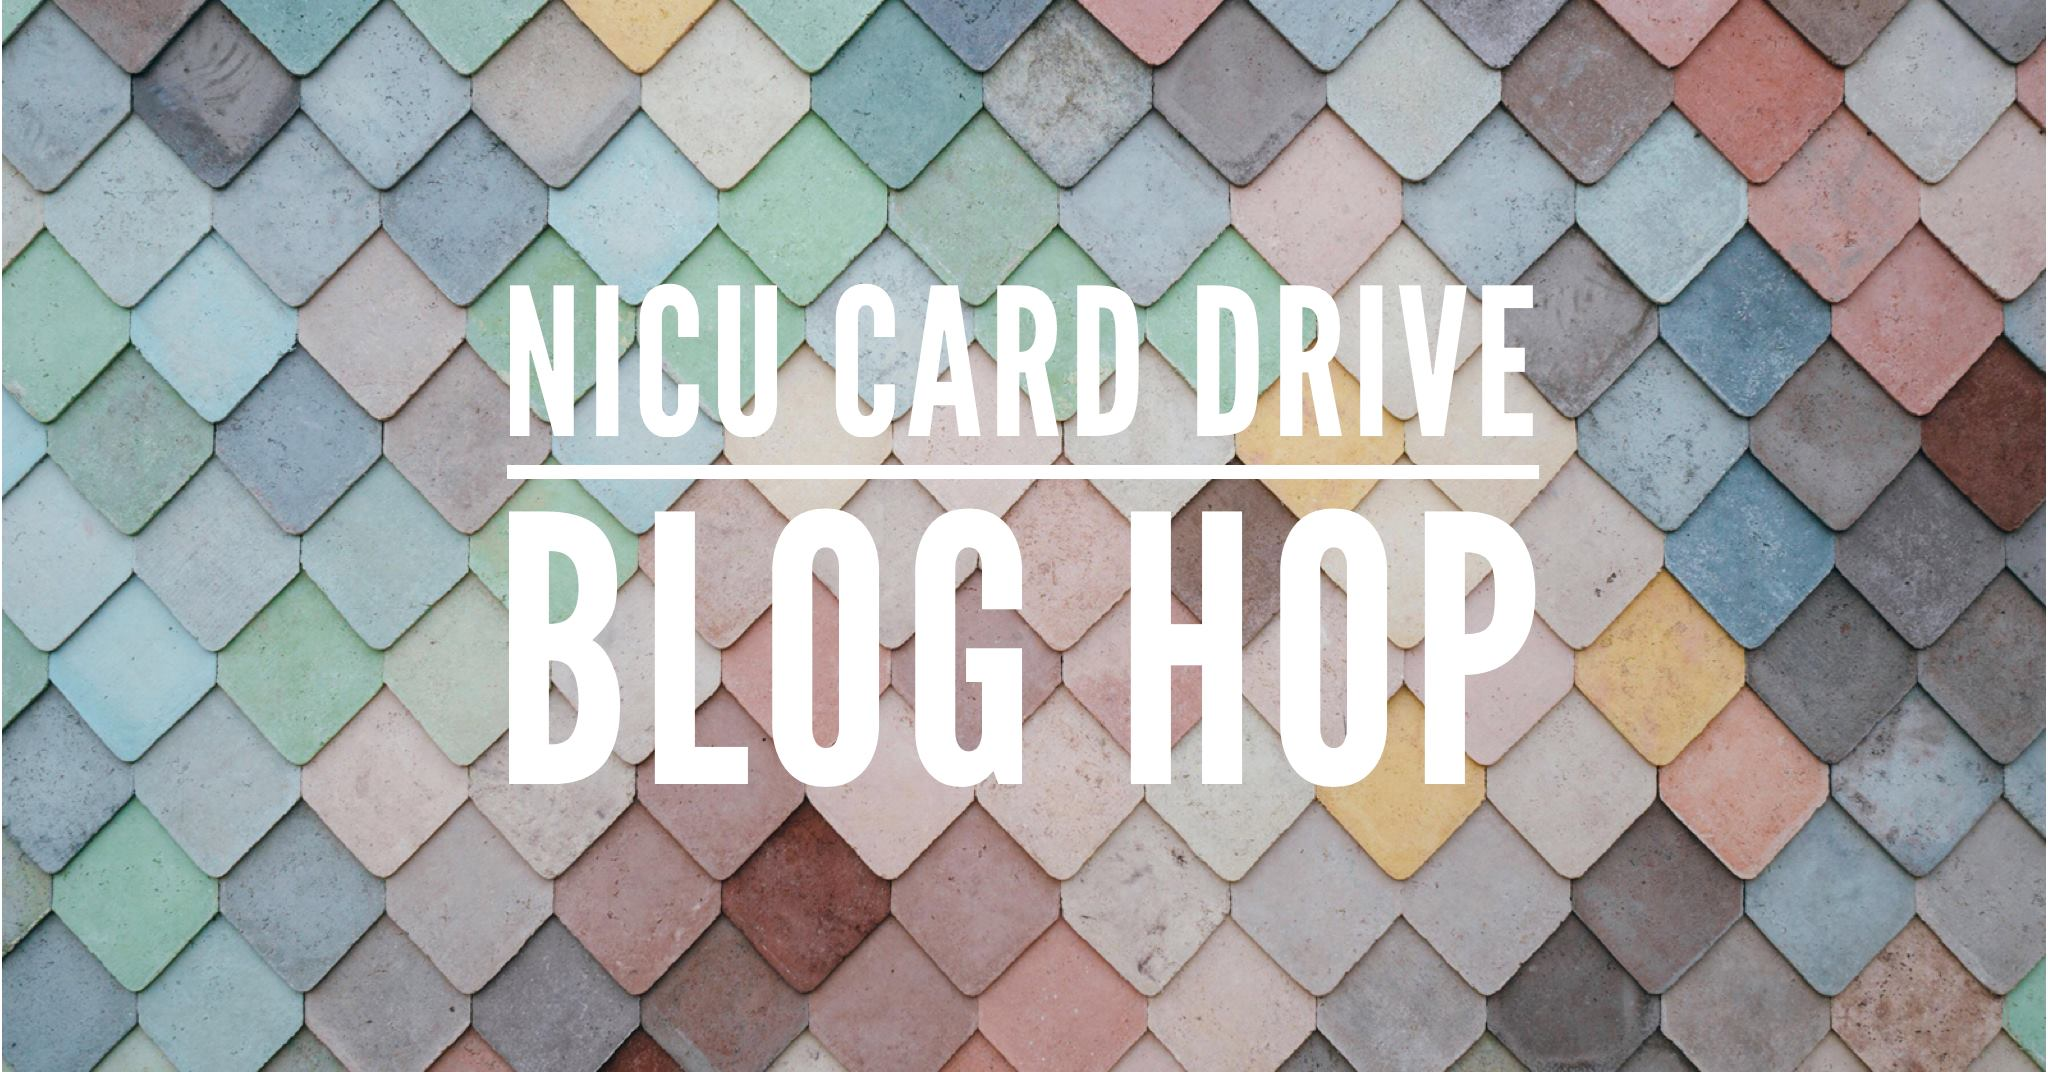 NICU Card Drive Blog Hop